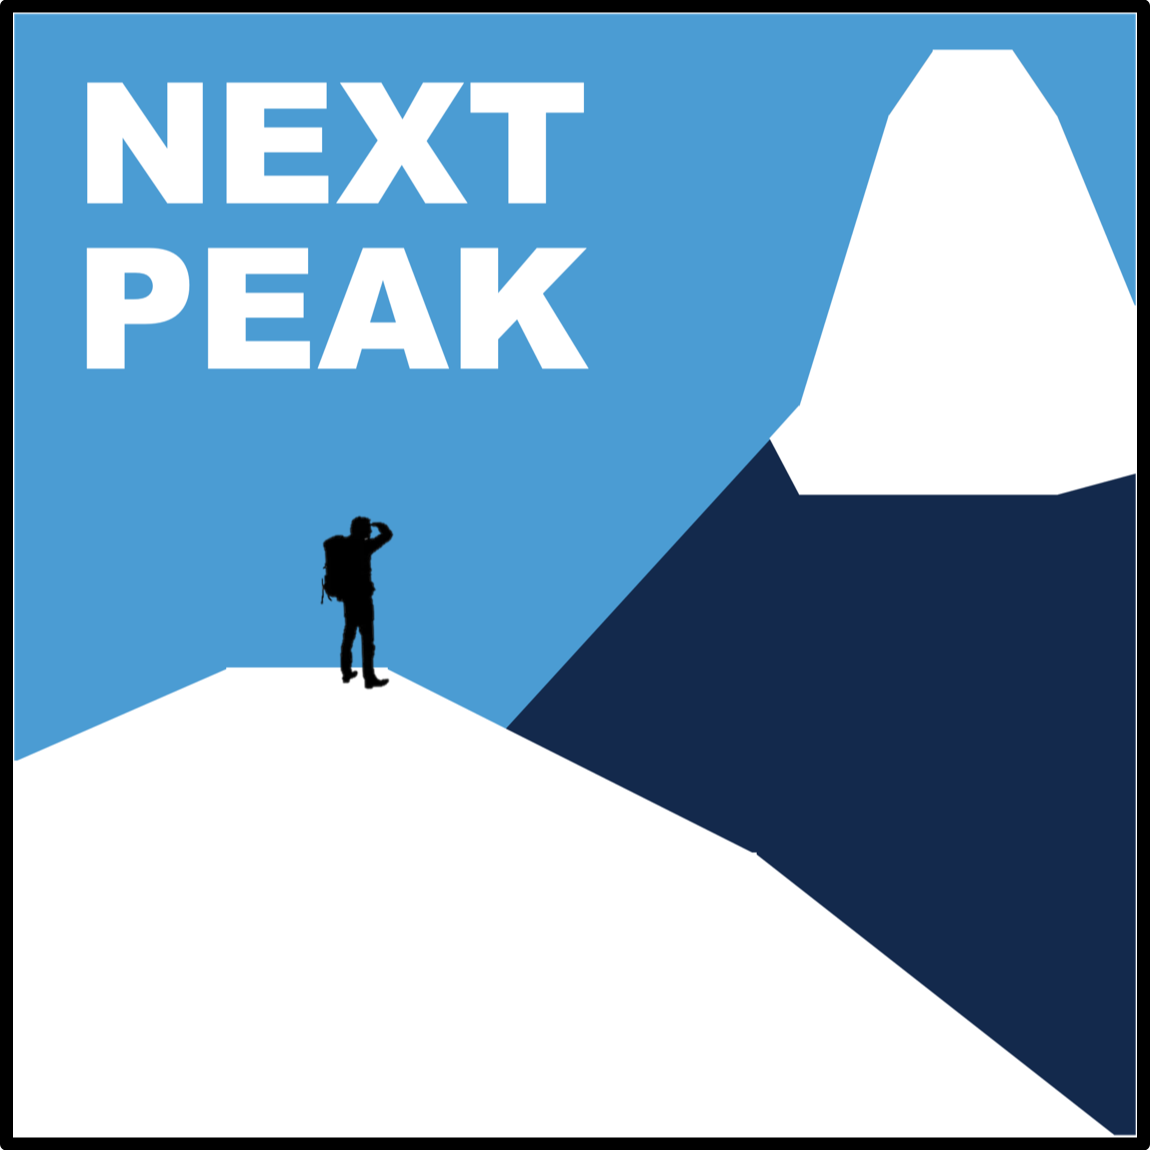 My Next Peak